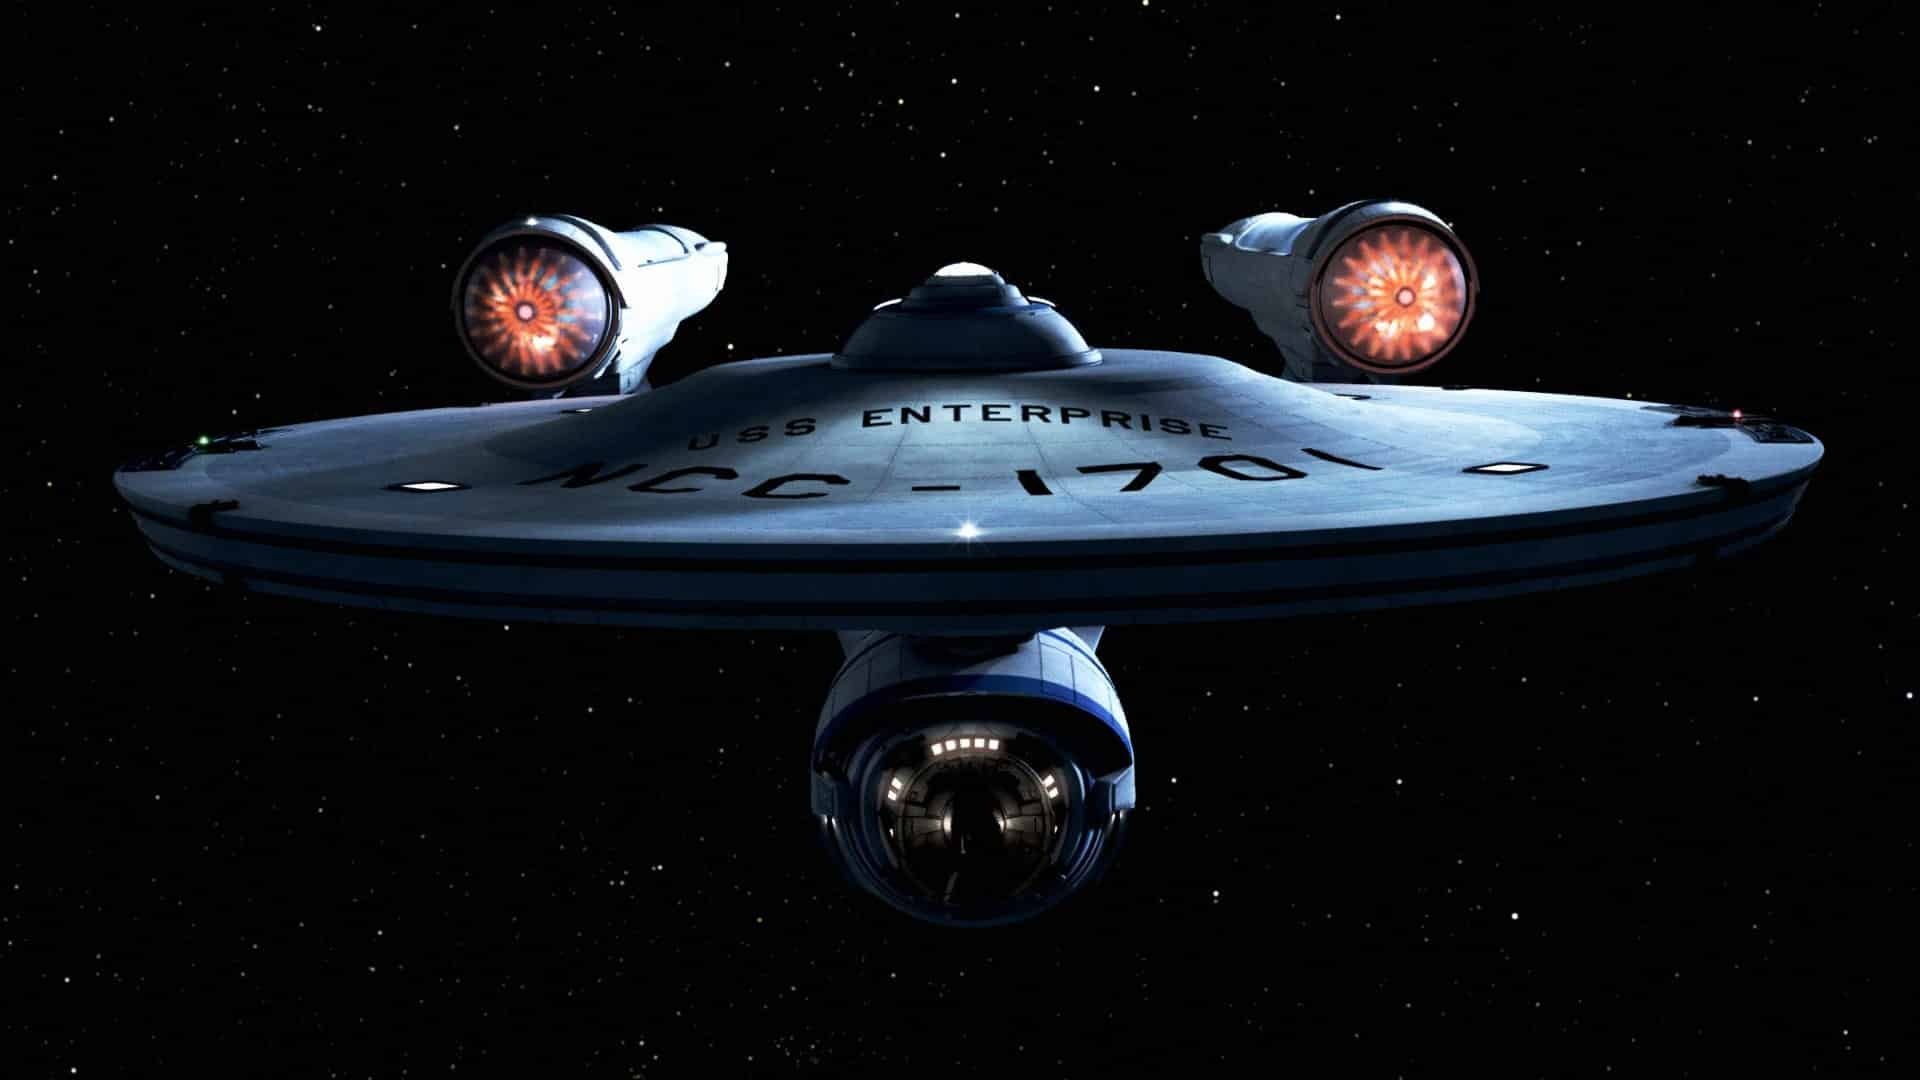 enterprise star trek uss enterprise spaceships 177329